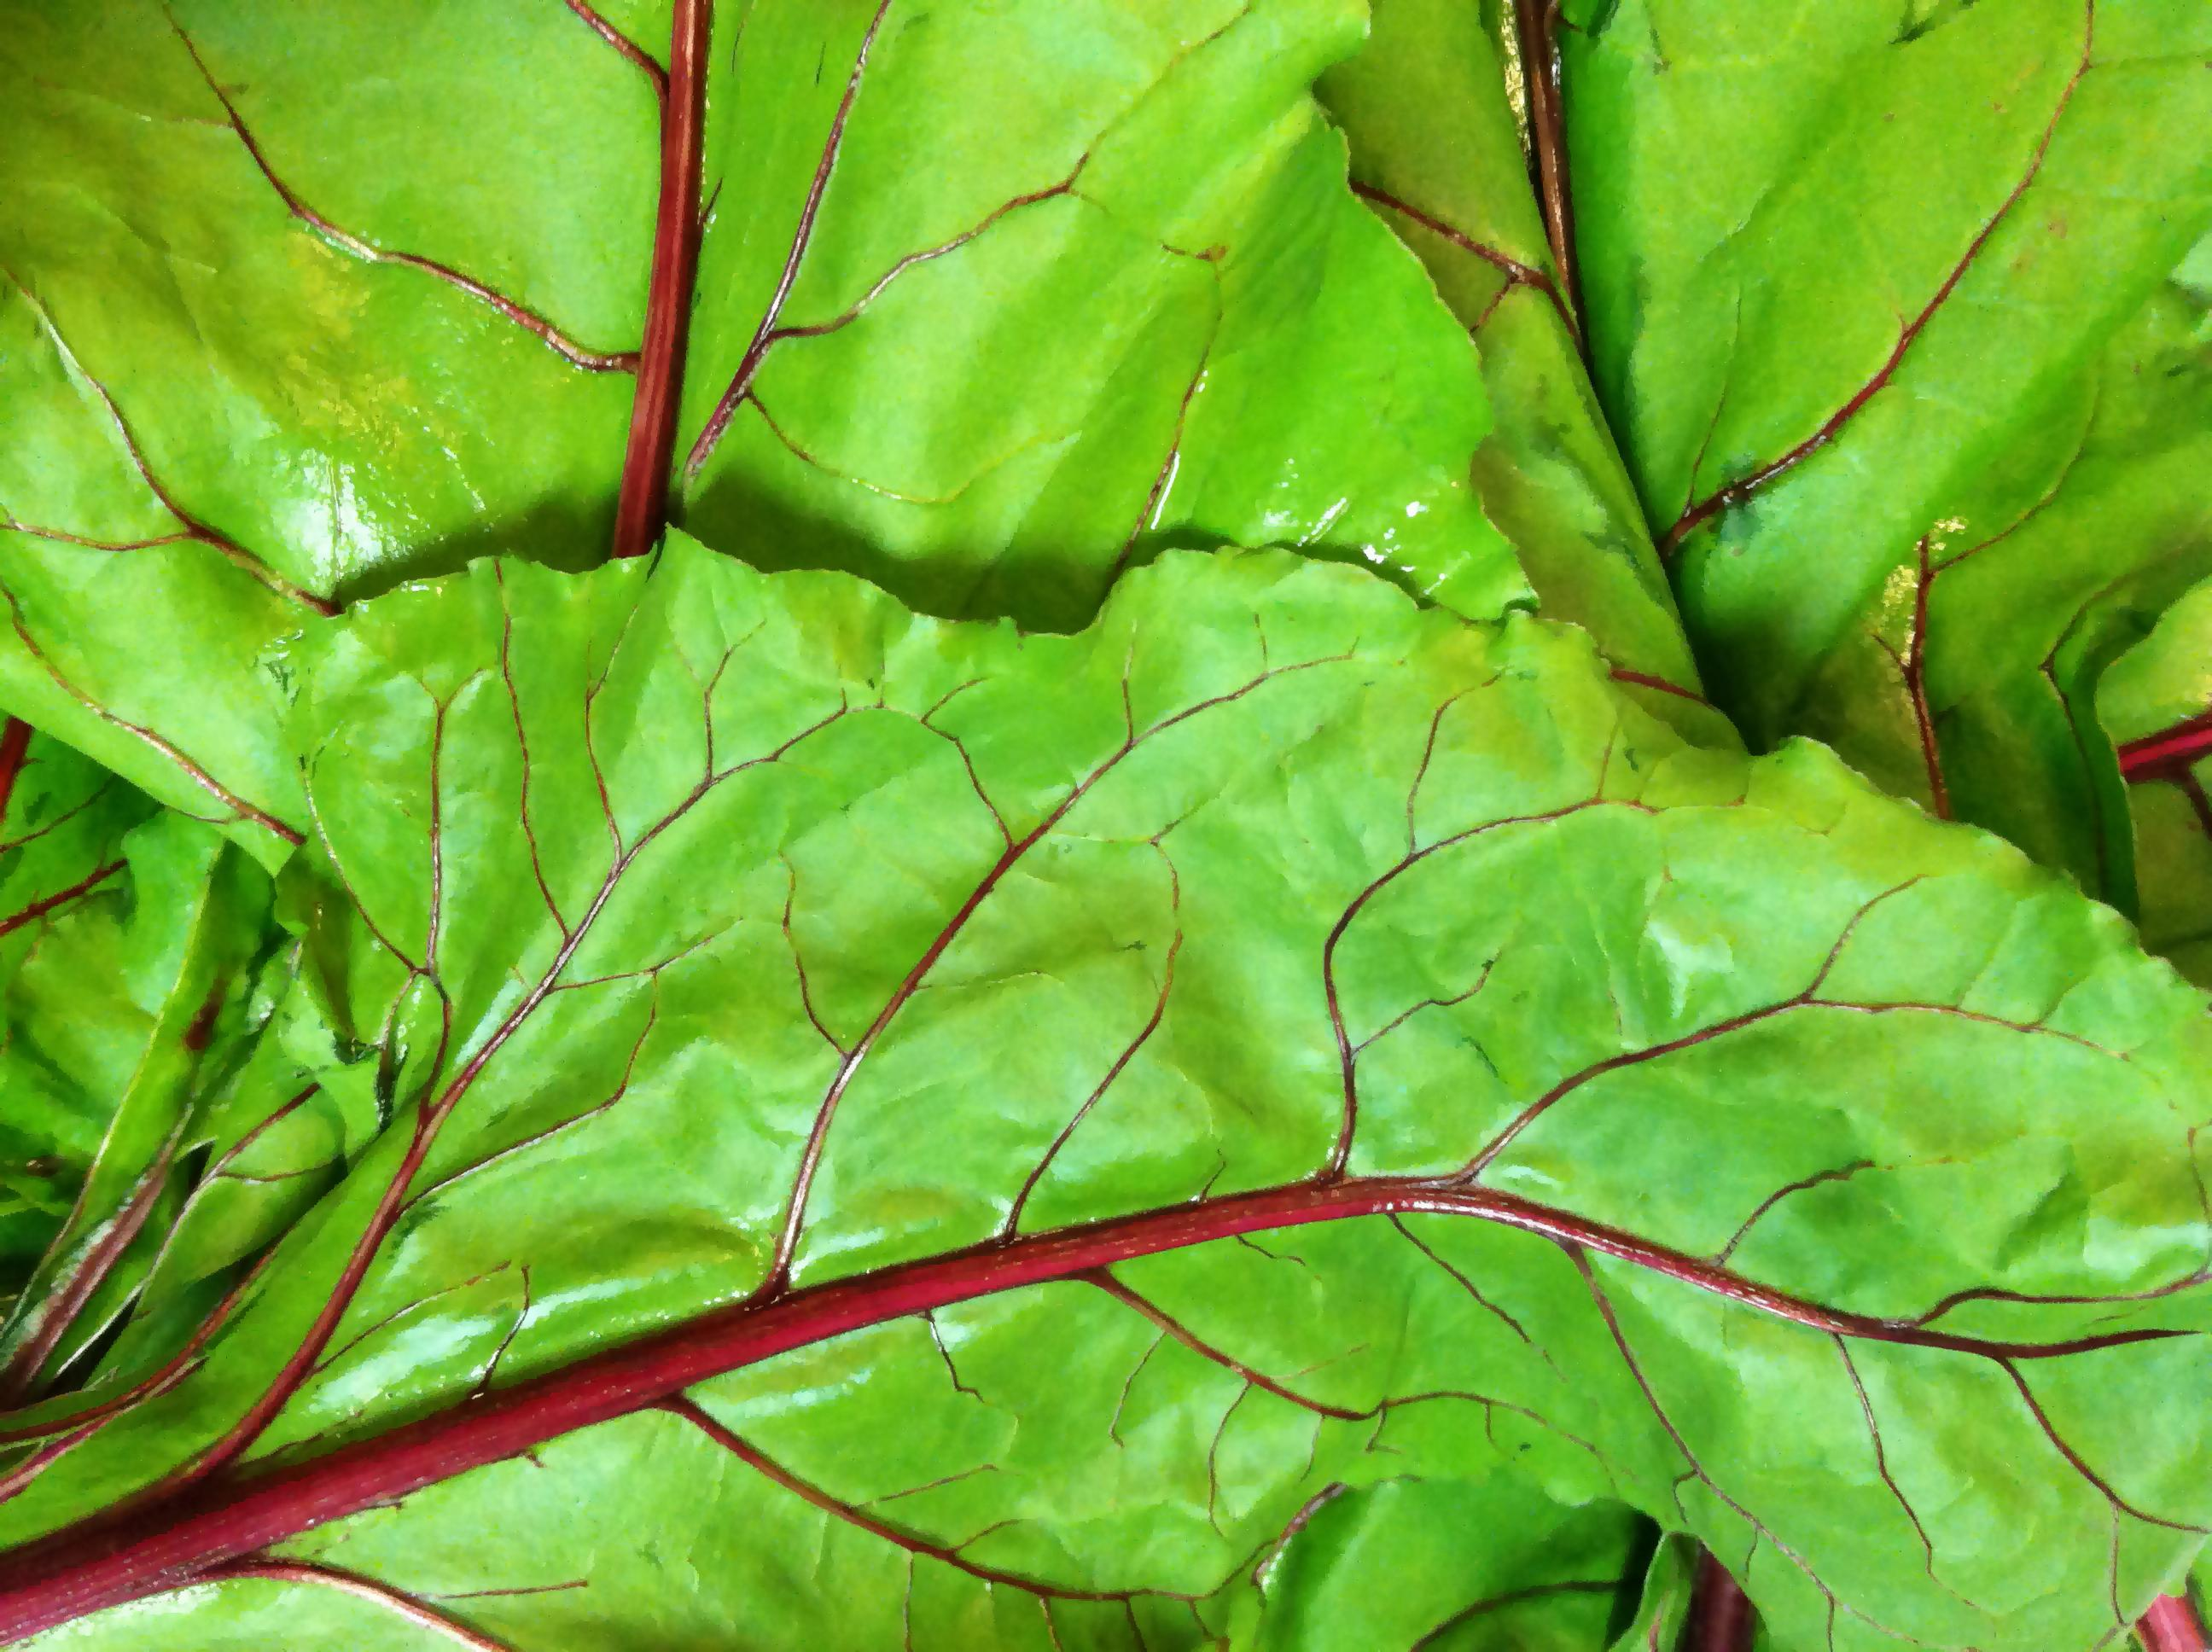 green beet leaves